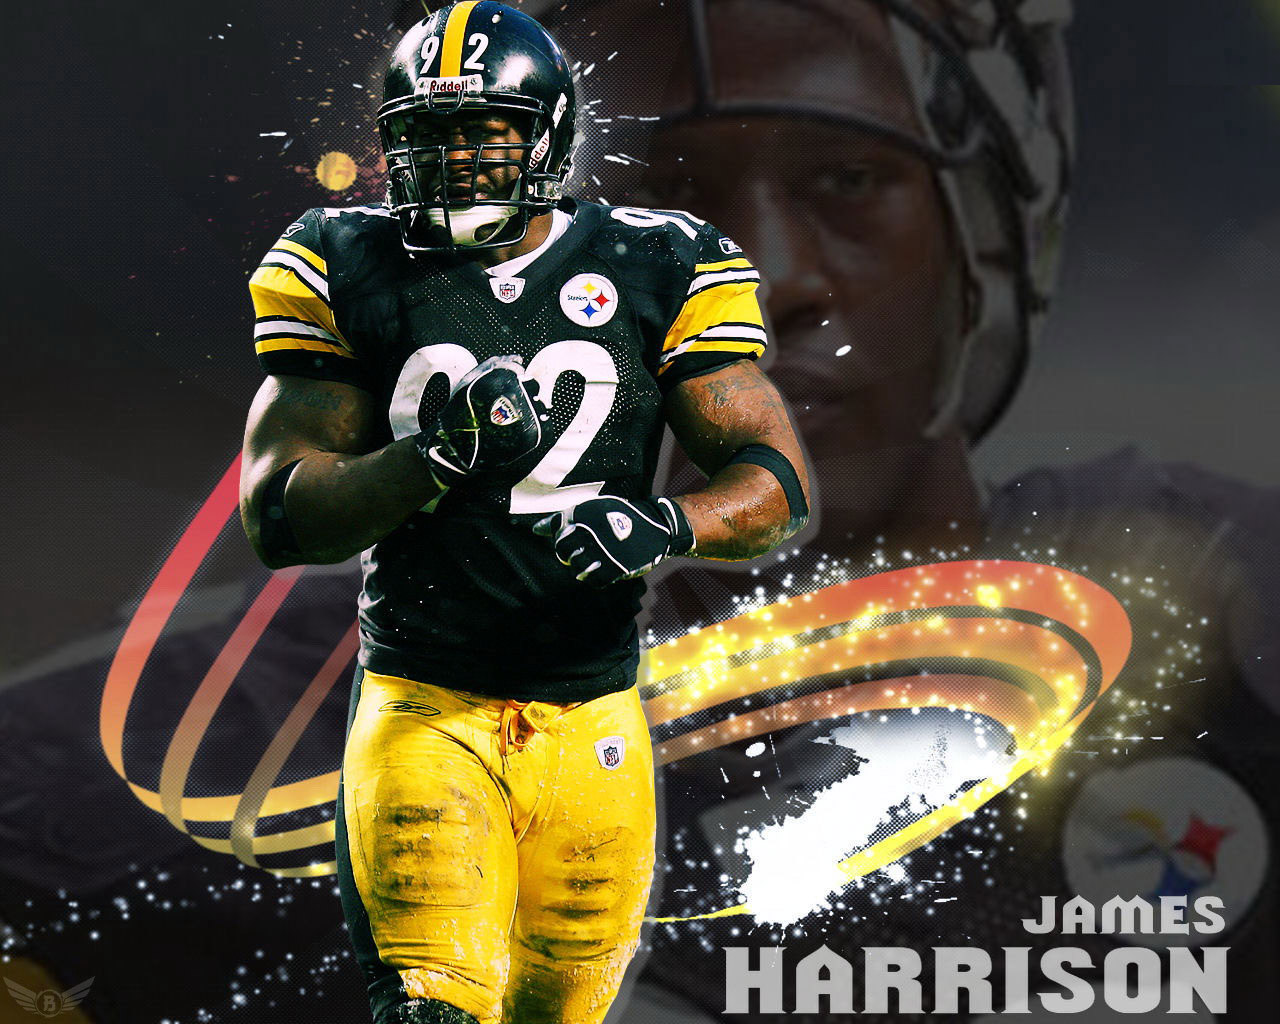 http://3.bp.blogspot.com/_SPY5-z18DBU/TS-laD9ZMSI/AAAAAAAAAHo/HcdHnd4XquU/s1600/james_harrison_wallpaper_pittsburgh_steelers_1280x1024.jpg